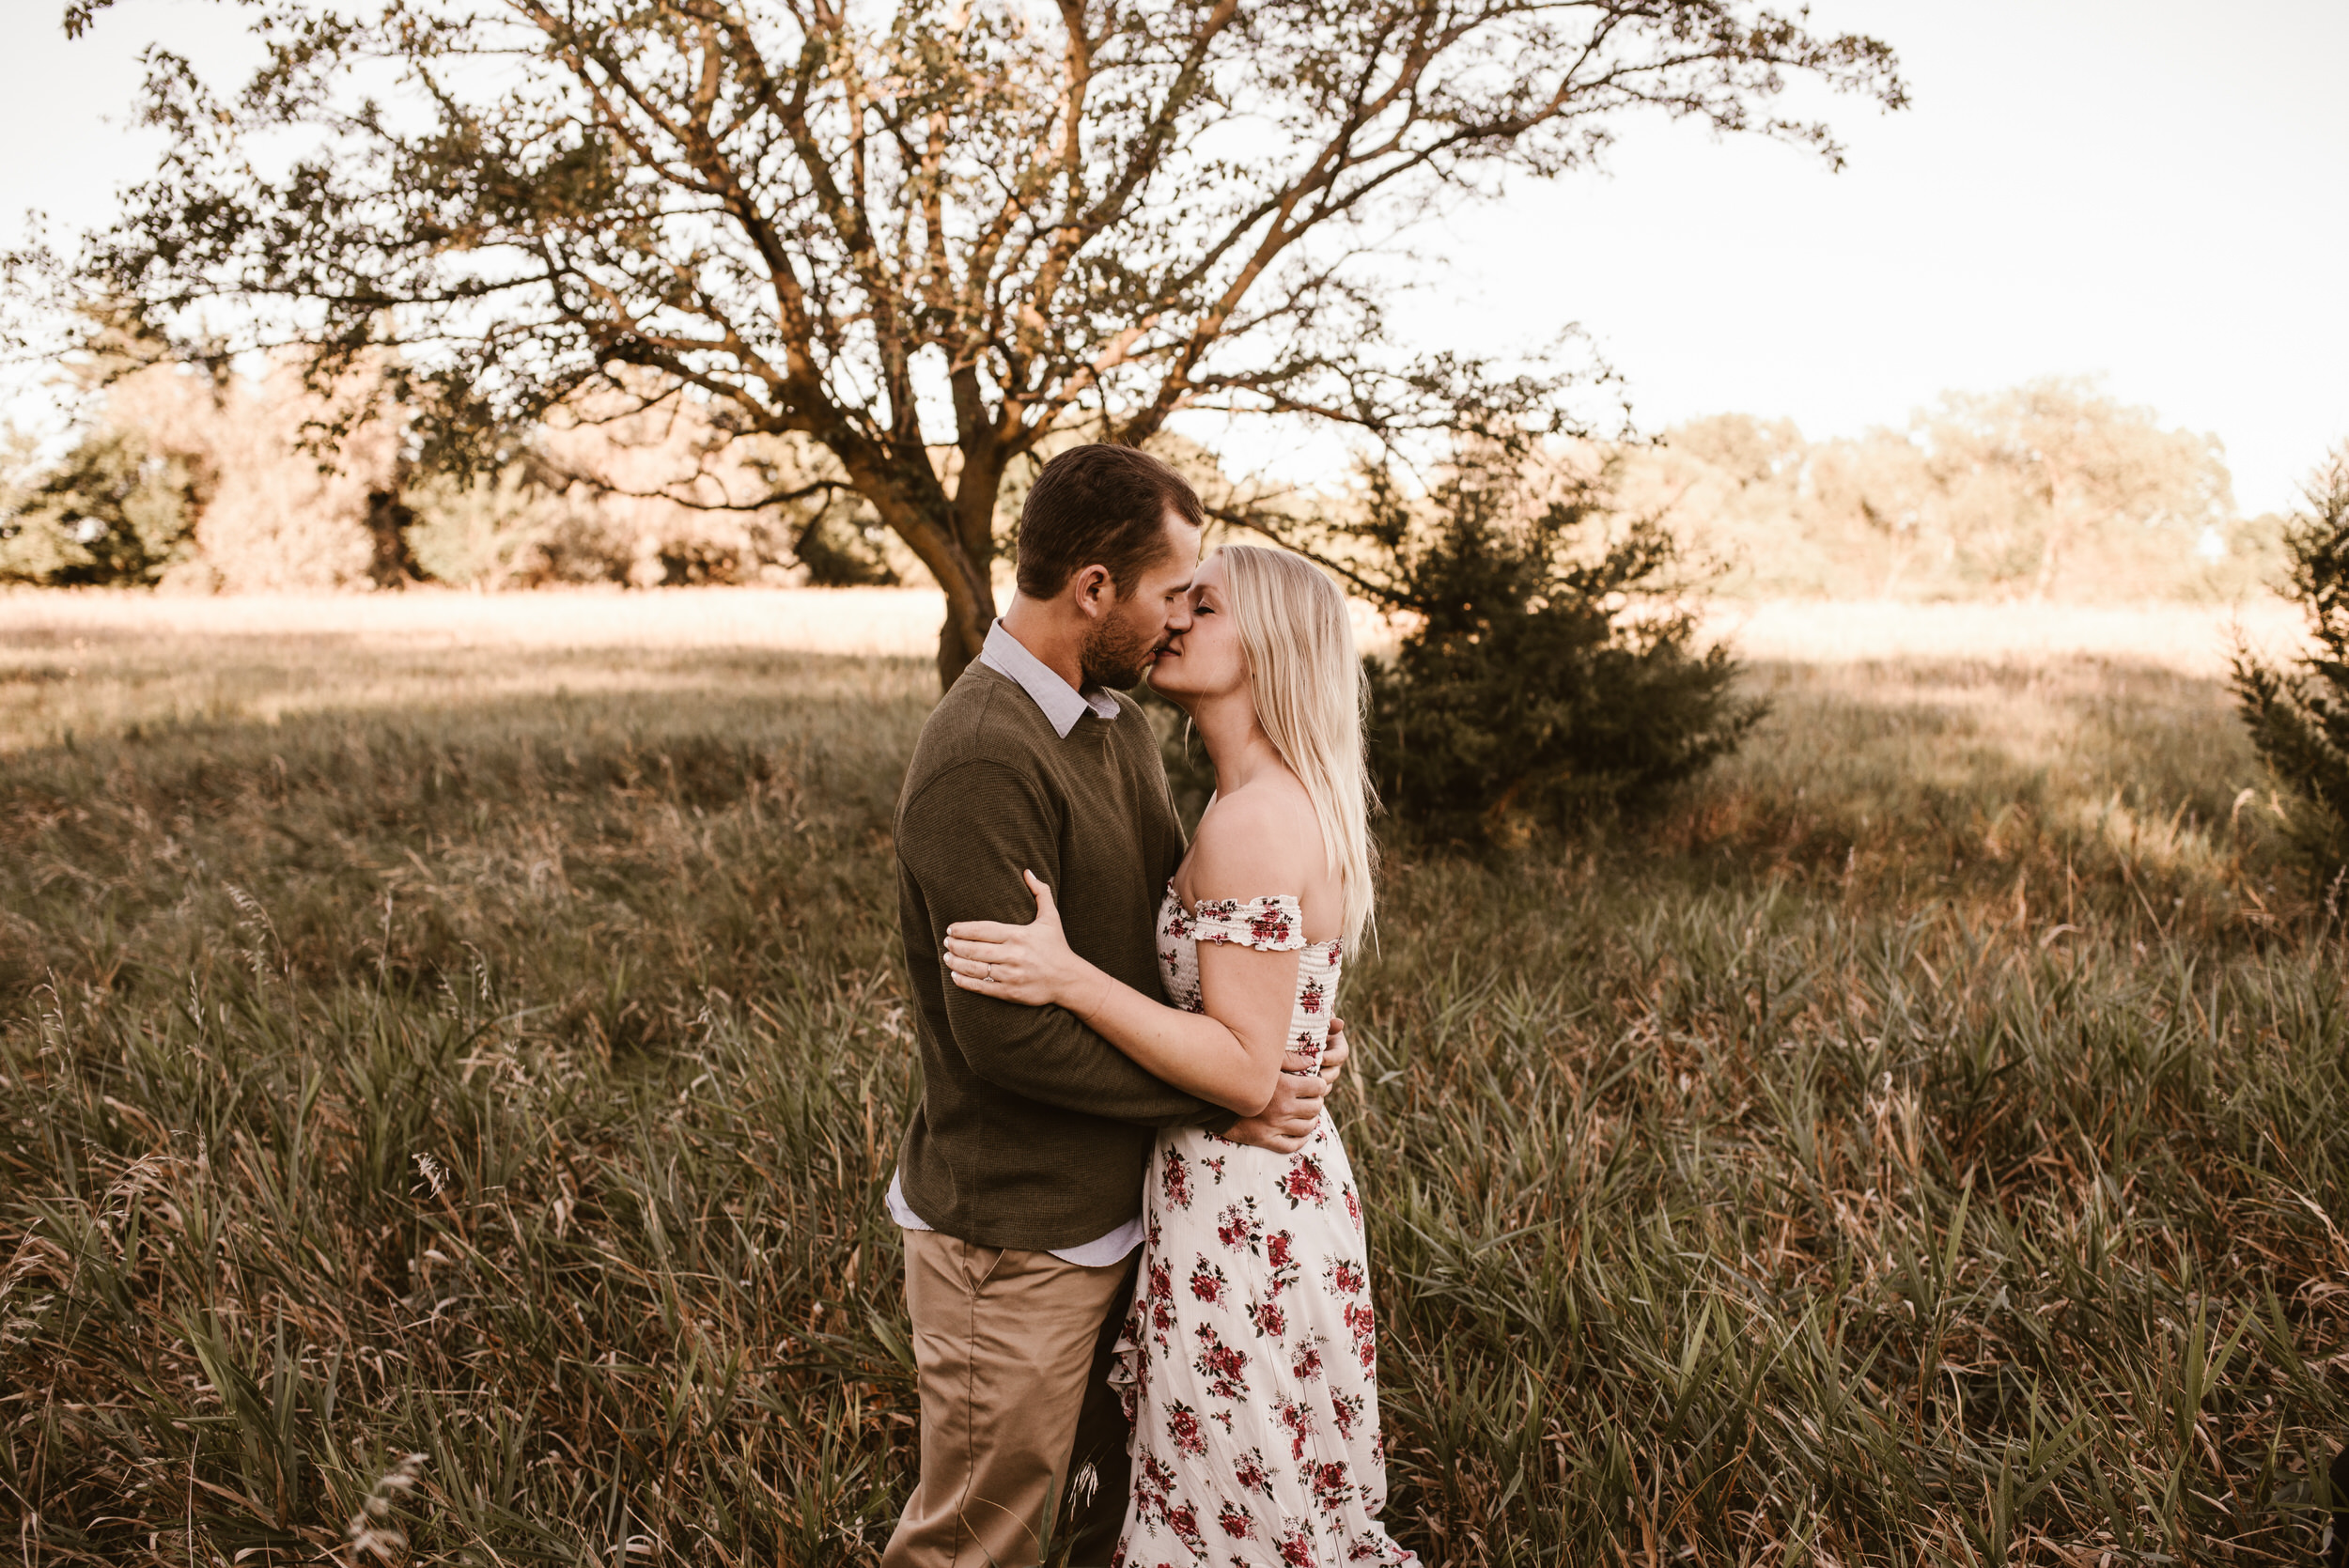 Nebraska Engagement Photographer Kaylie Sirek Photography 06.jpg